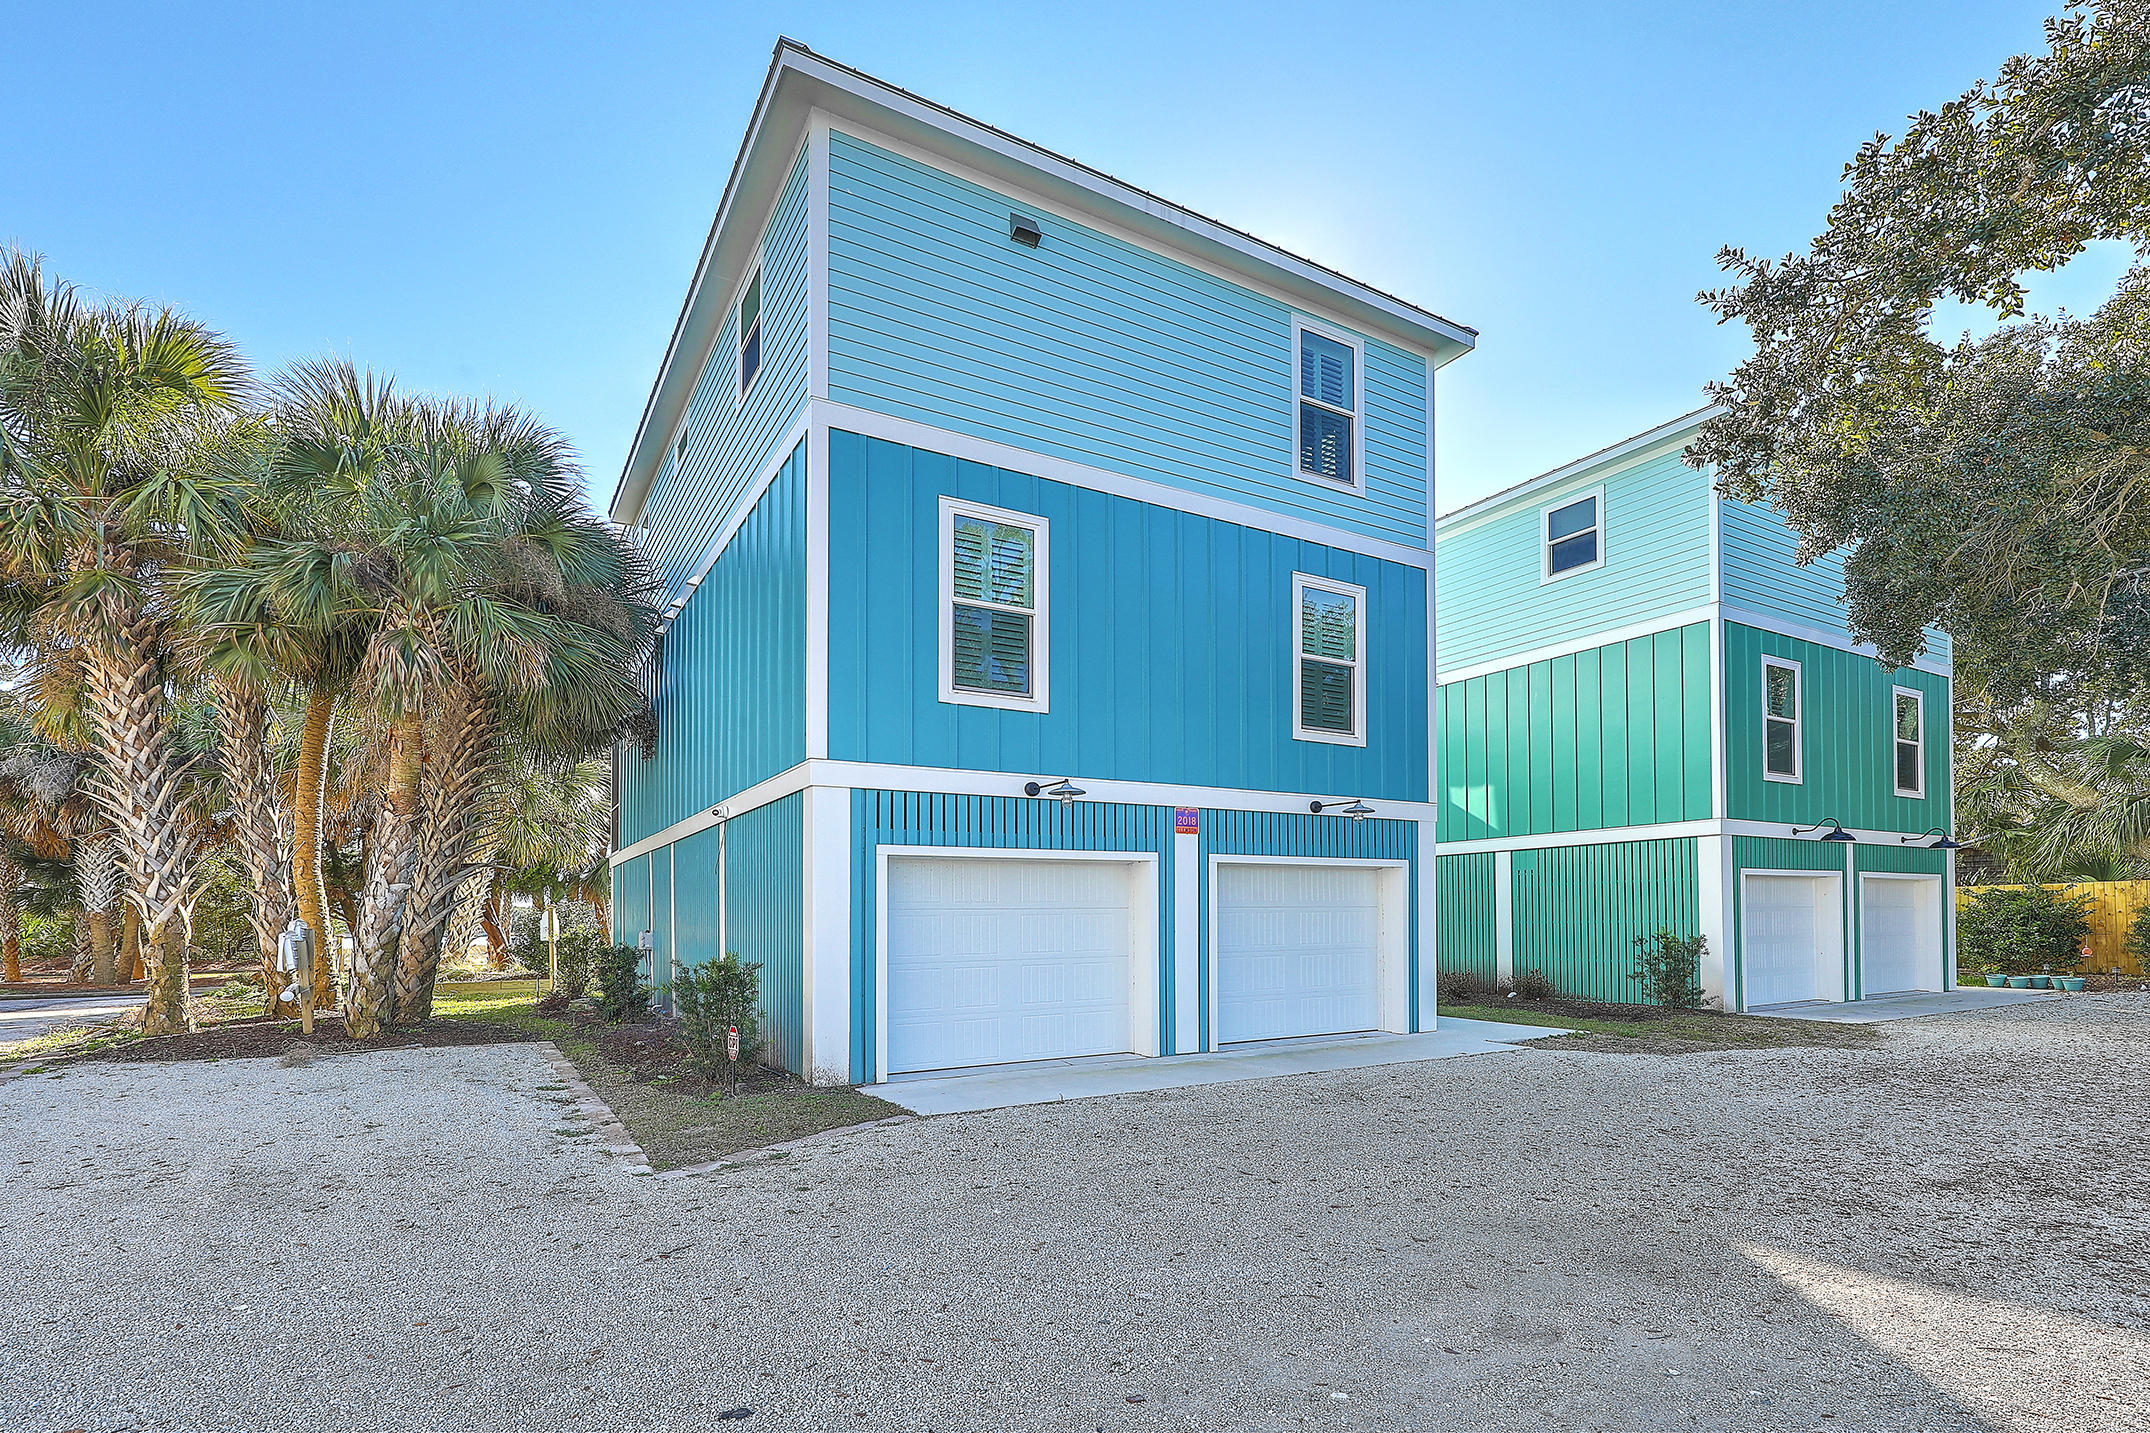 Mariners Cay Homes For Sale - 1002 Mariners Cay, Folly Beach, SC - 26